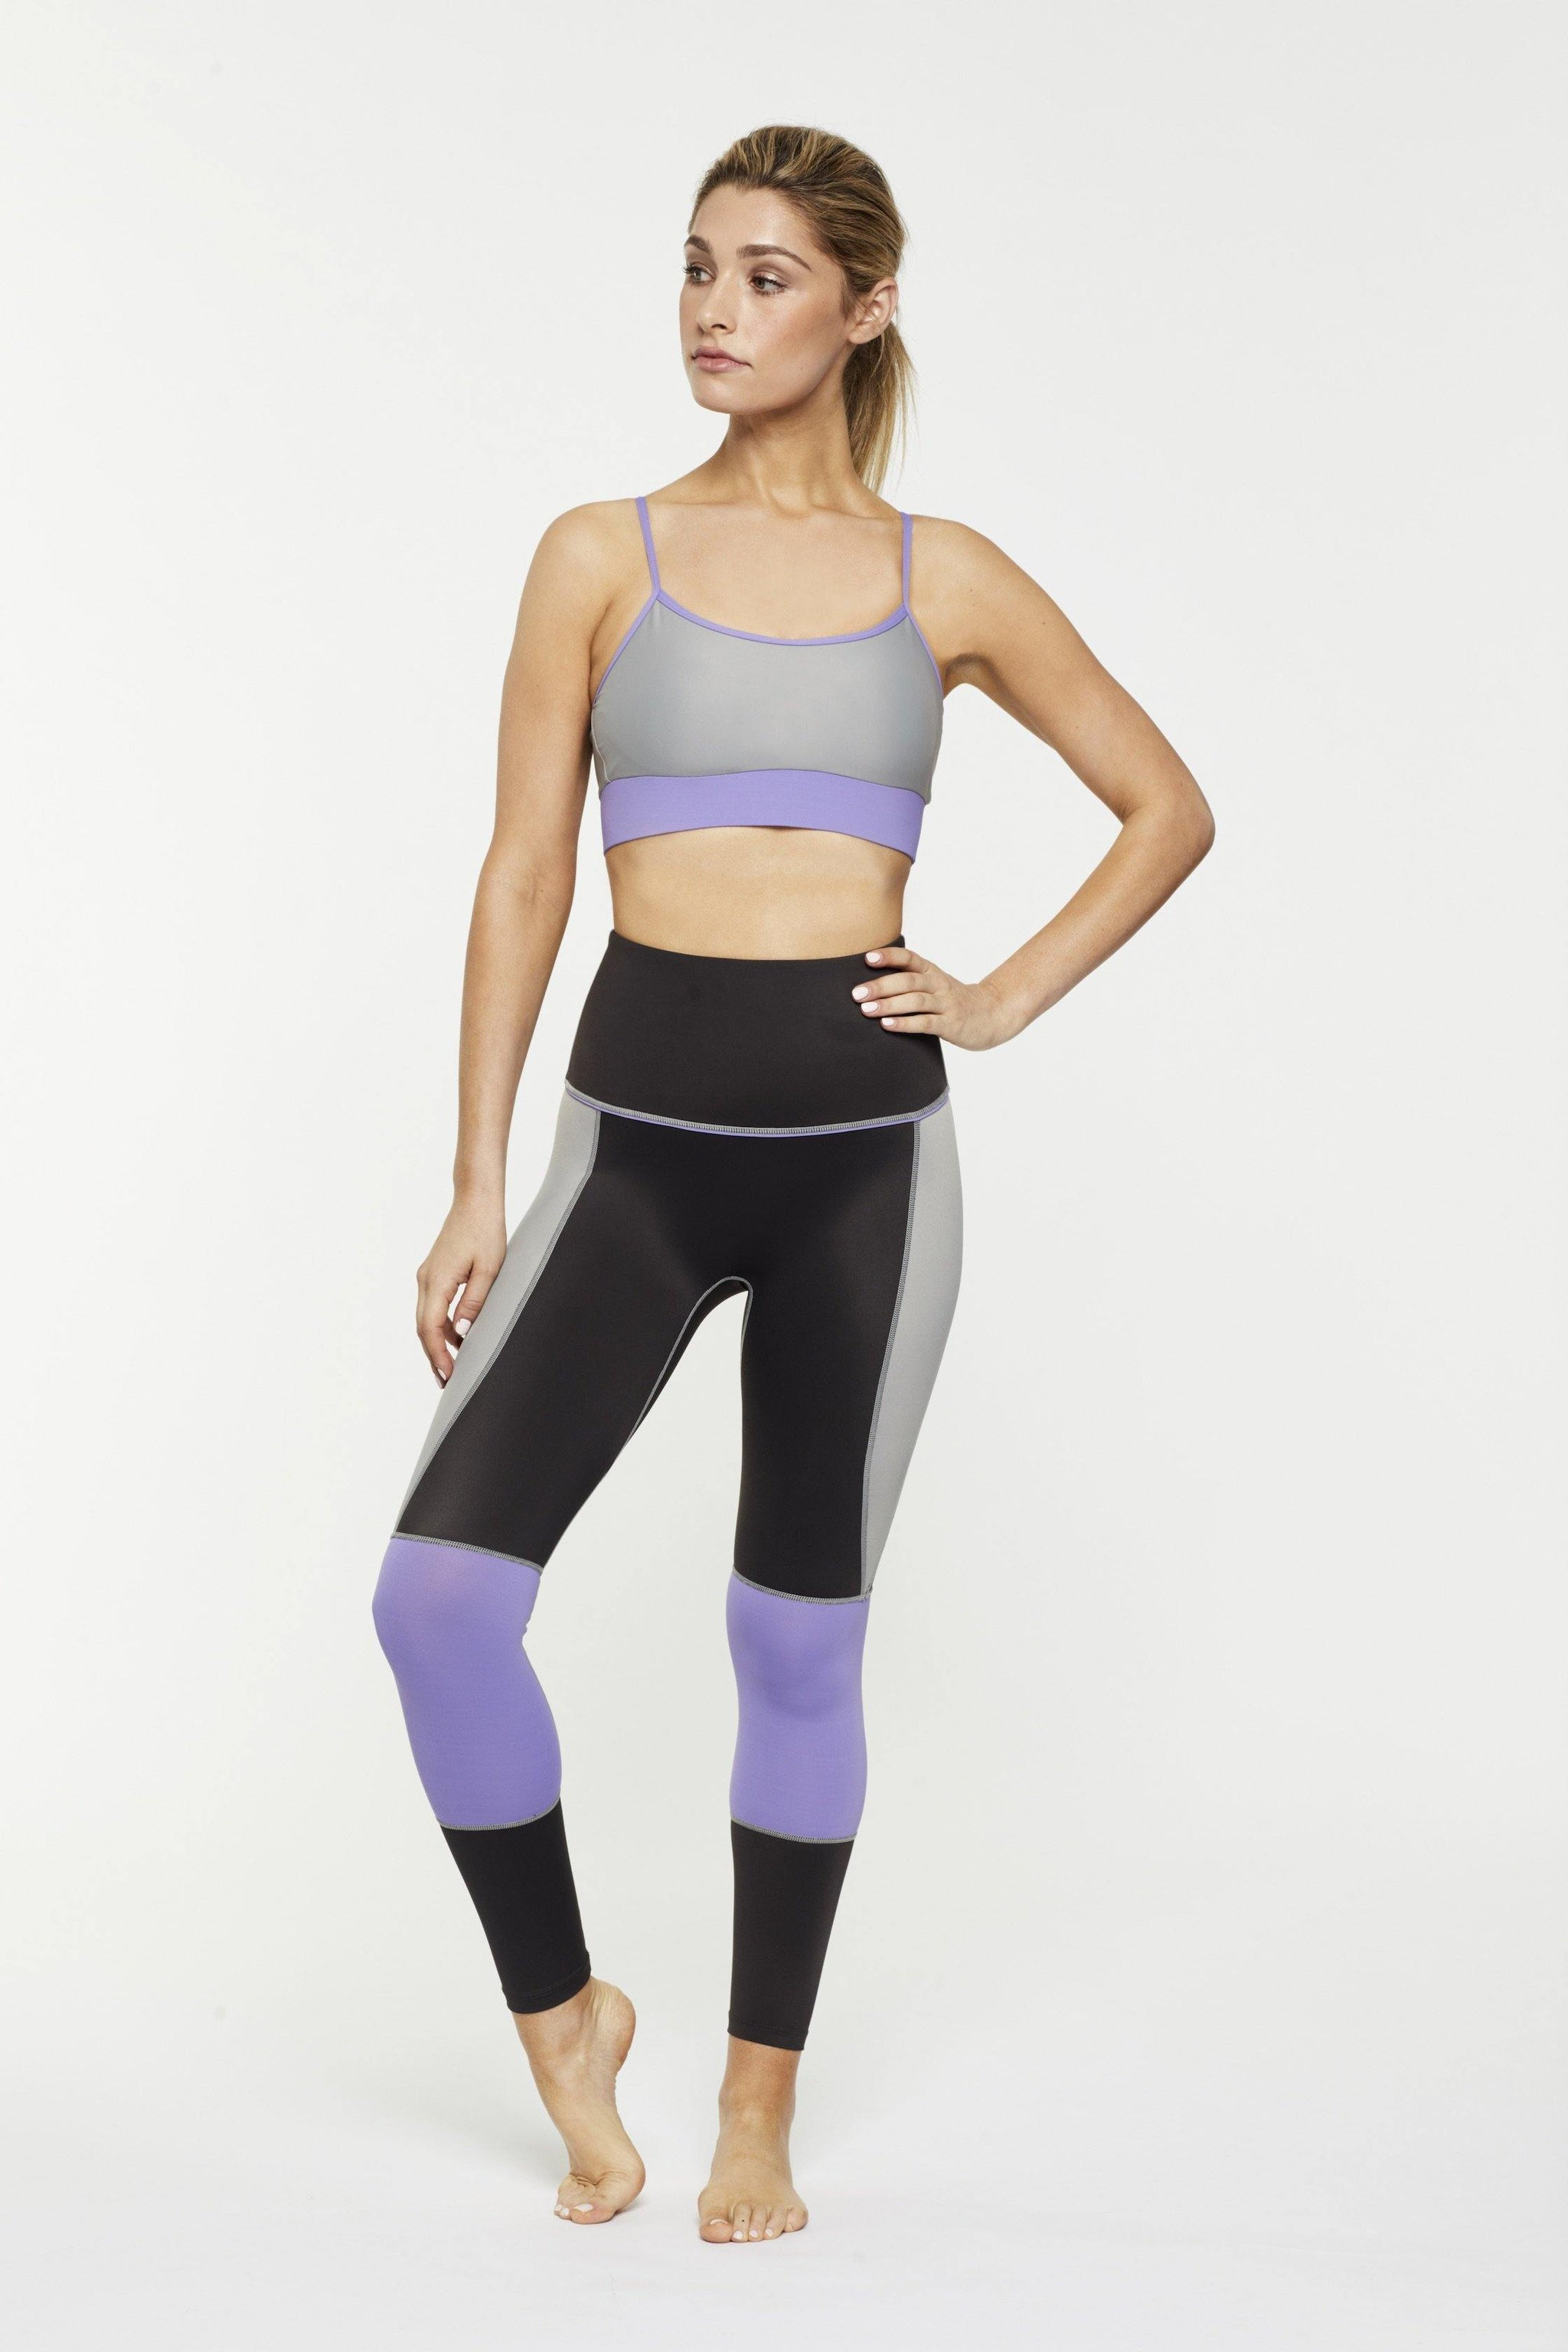 STEELY GRACILIS 7/8 HIGH WAISTED LEGGING LIQUORICE GREY WITH CONTRAST PANELS WORN WITH INFRASPINATUS BRA TOP, FRONT VIEW